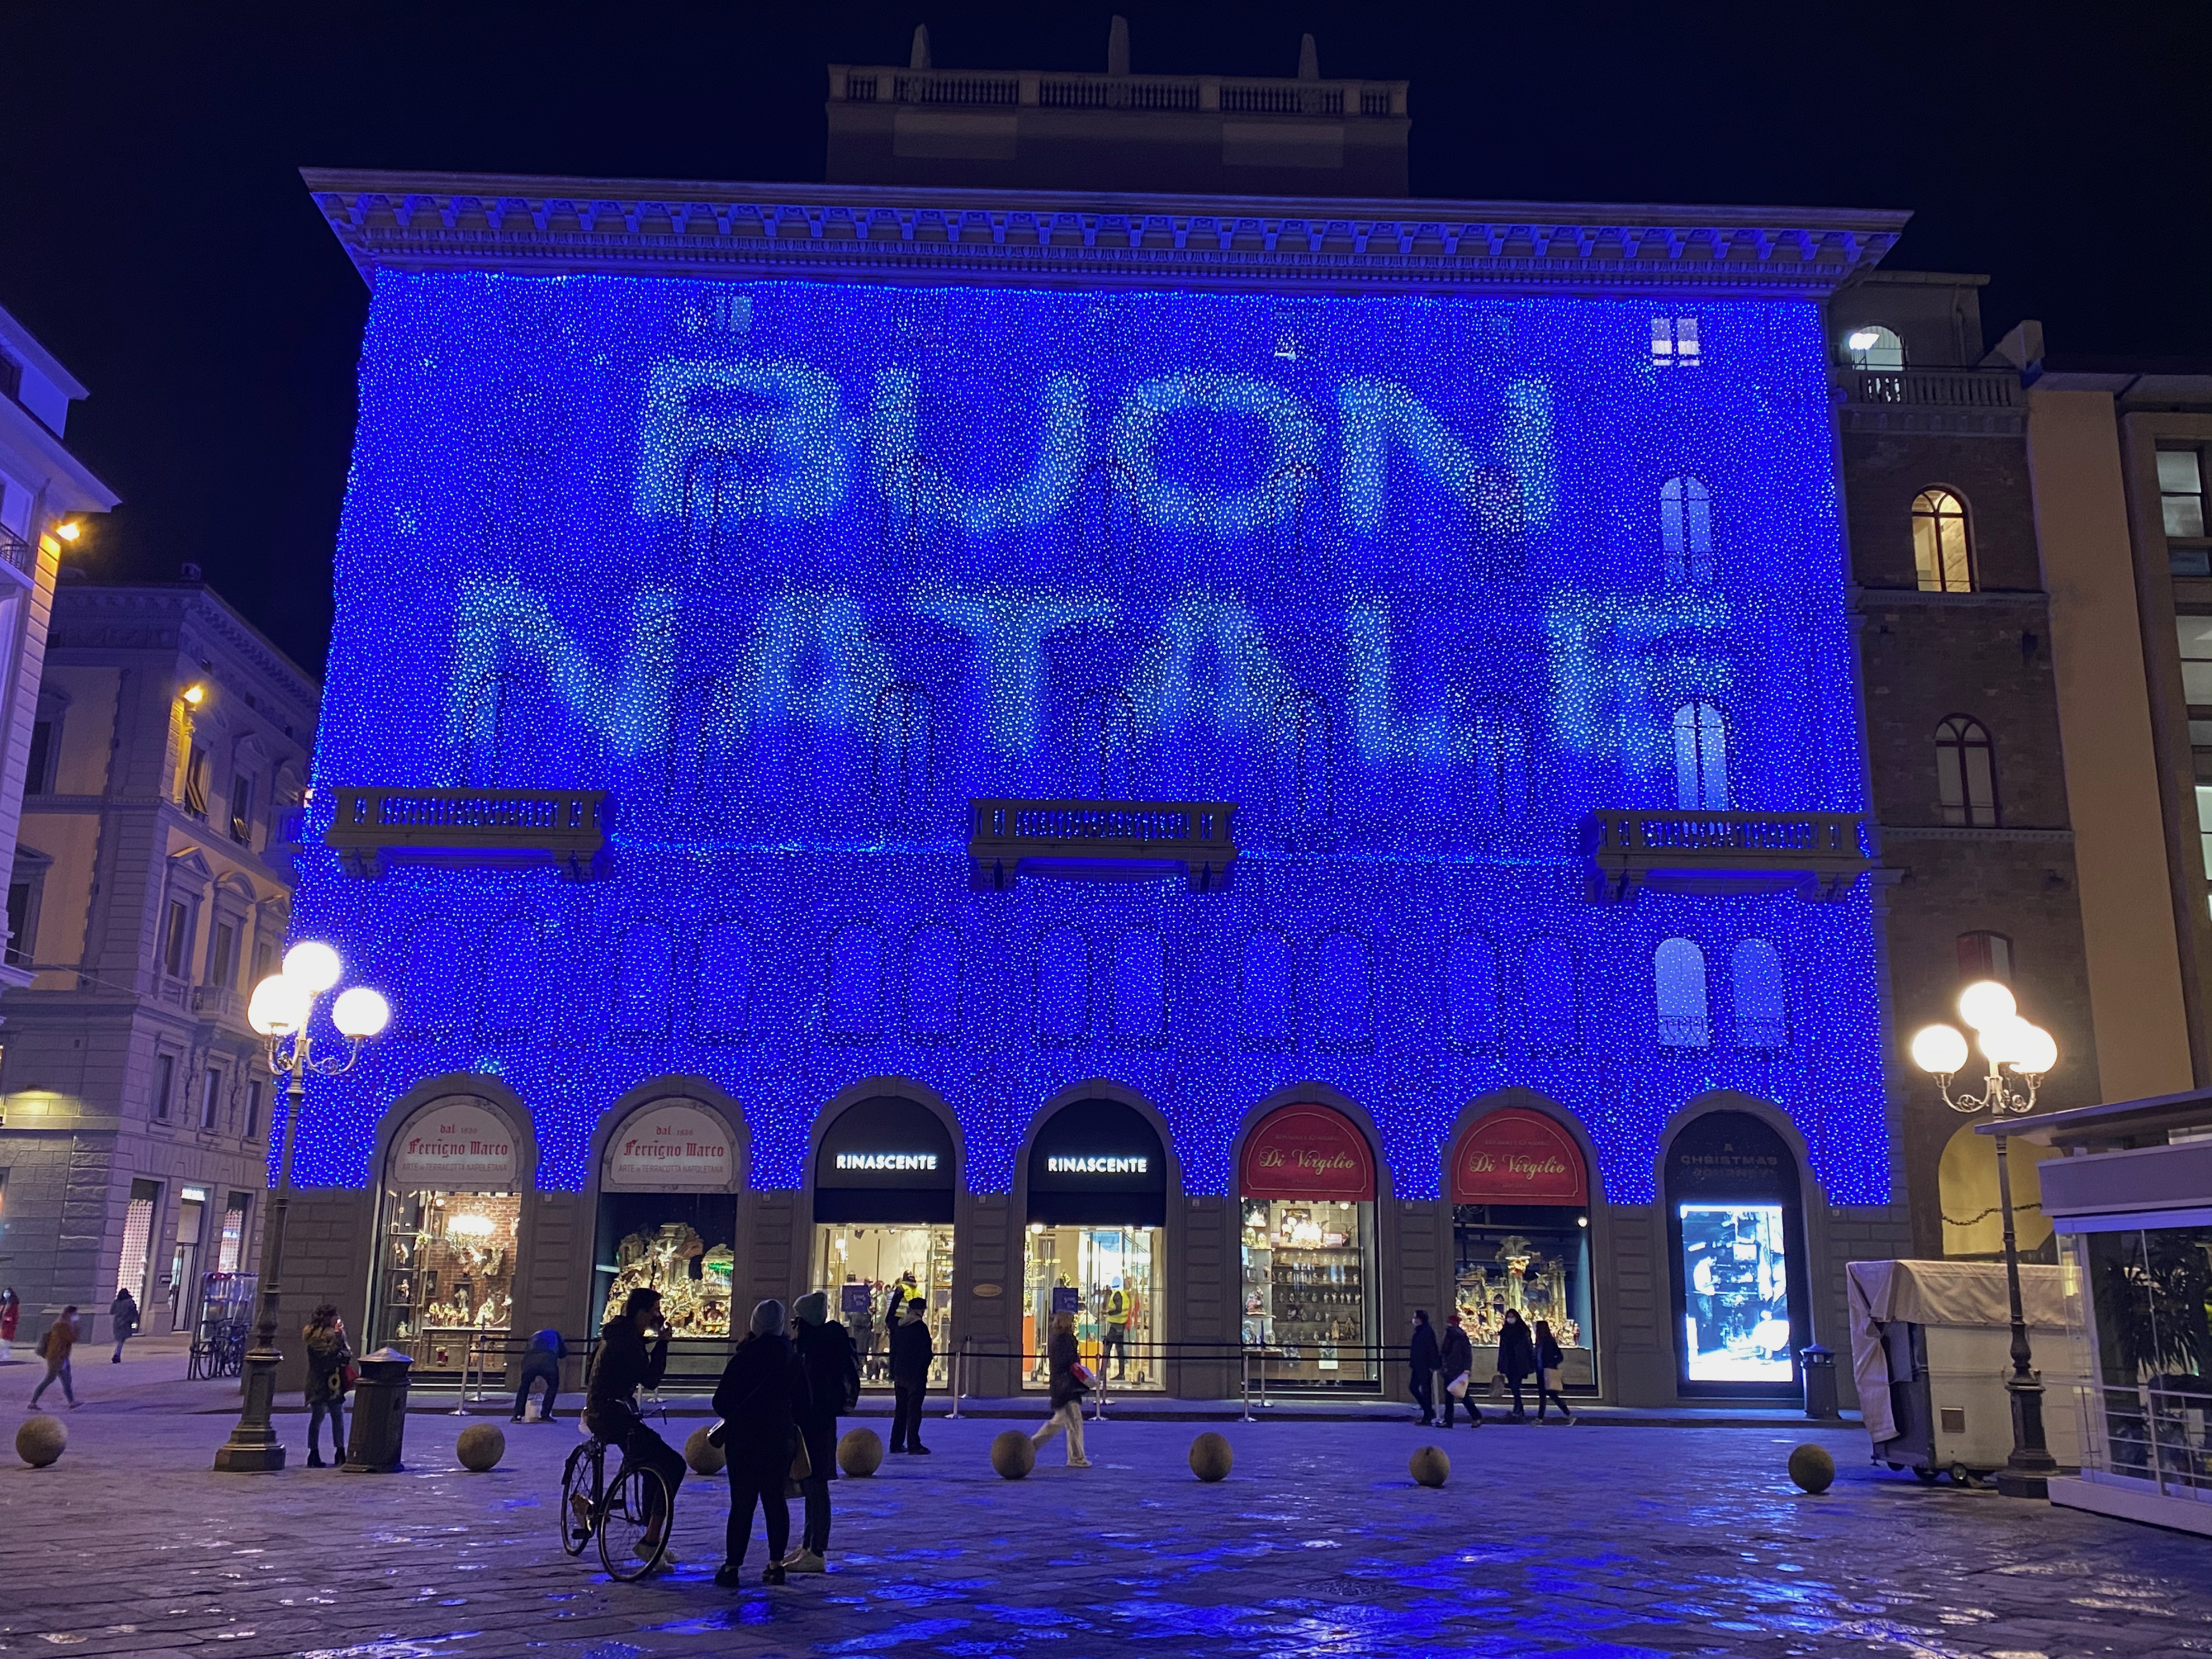 The Rinascente department store, Christmas 2020, Florence